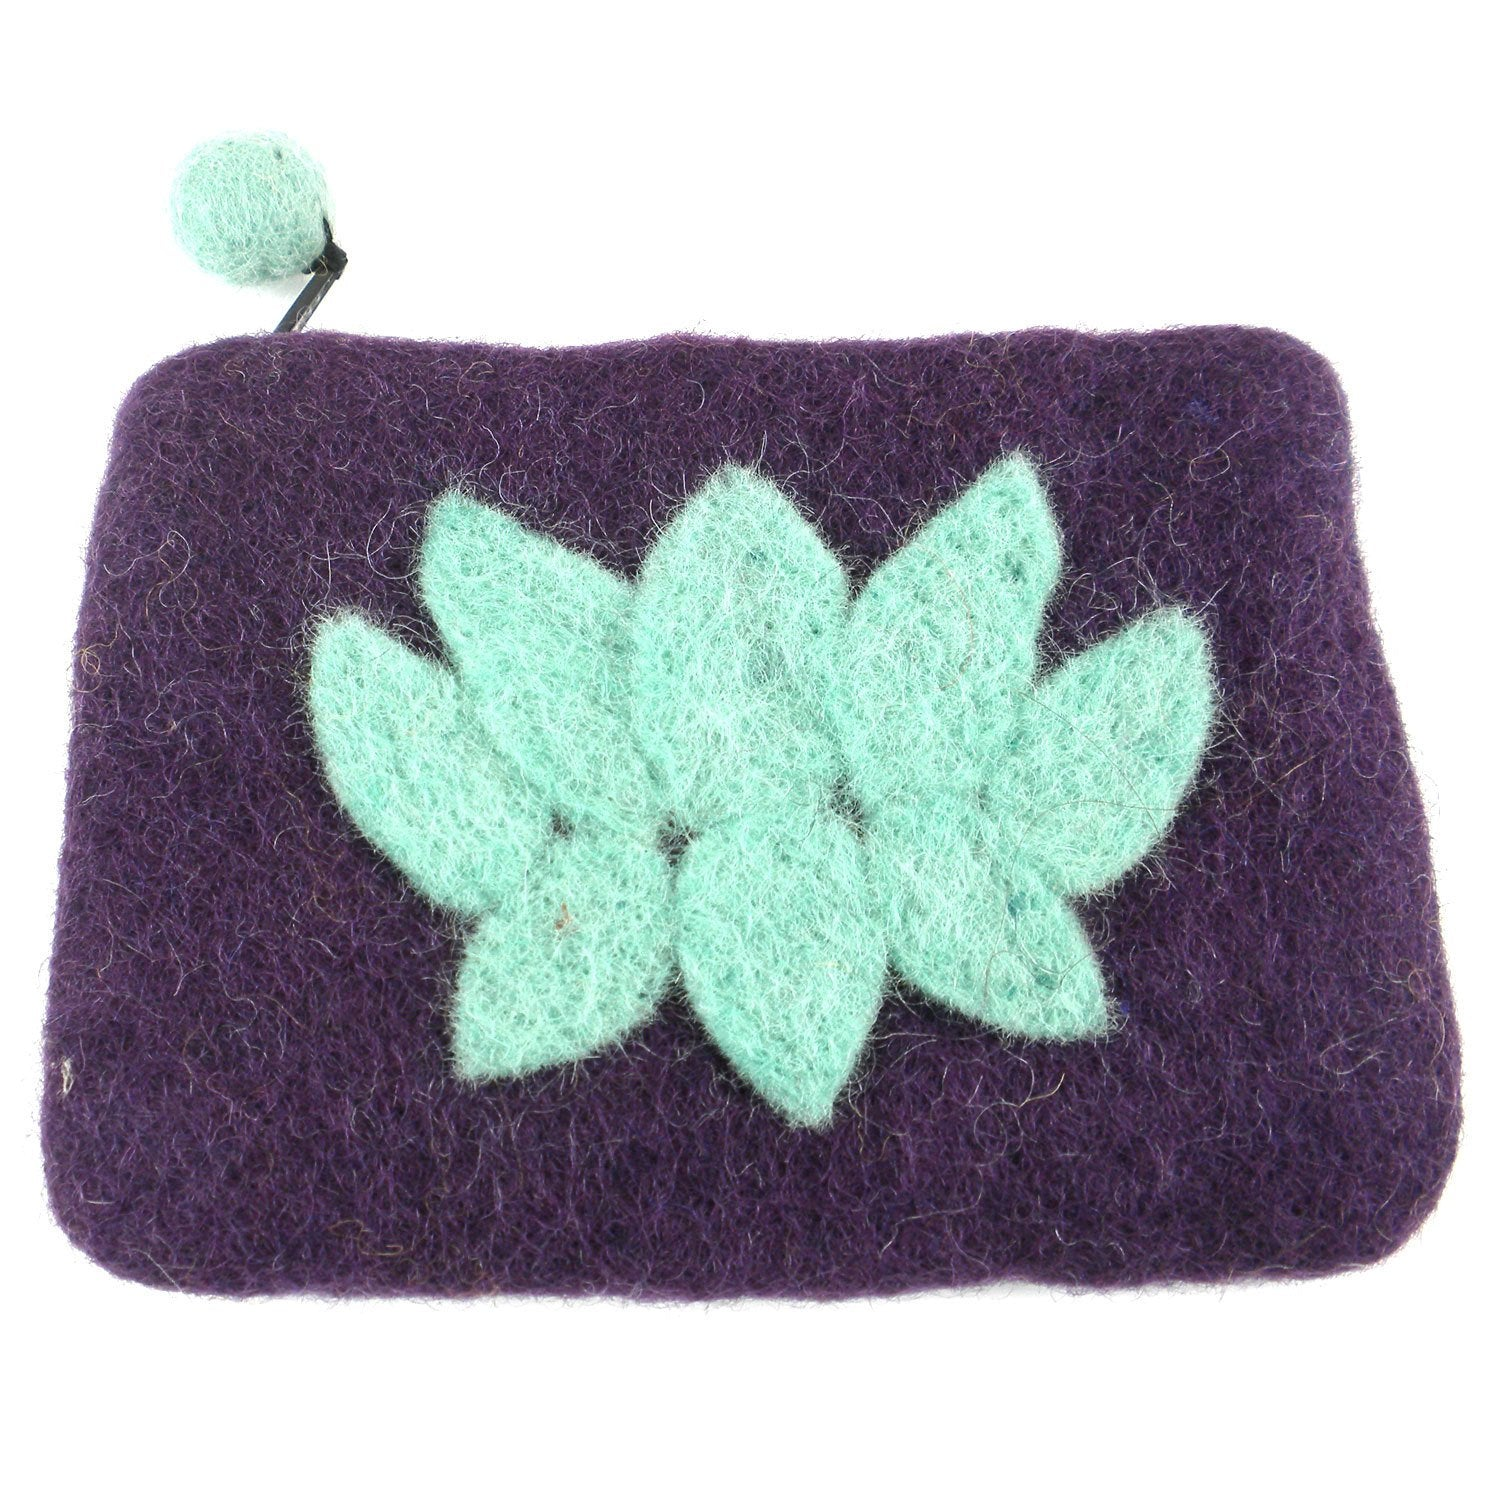 Hand Crafted Felt Pouch from Nepal: Lotus Flower, Wine